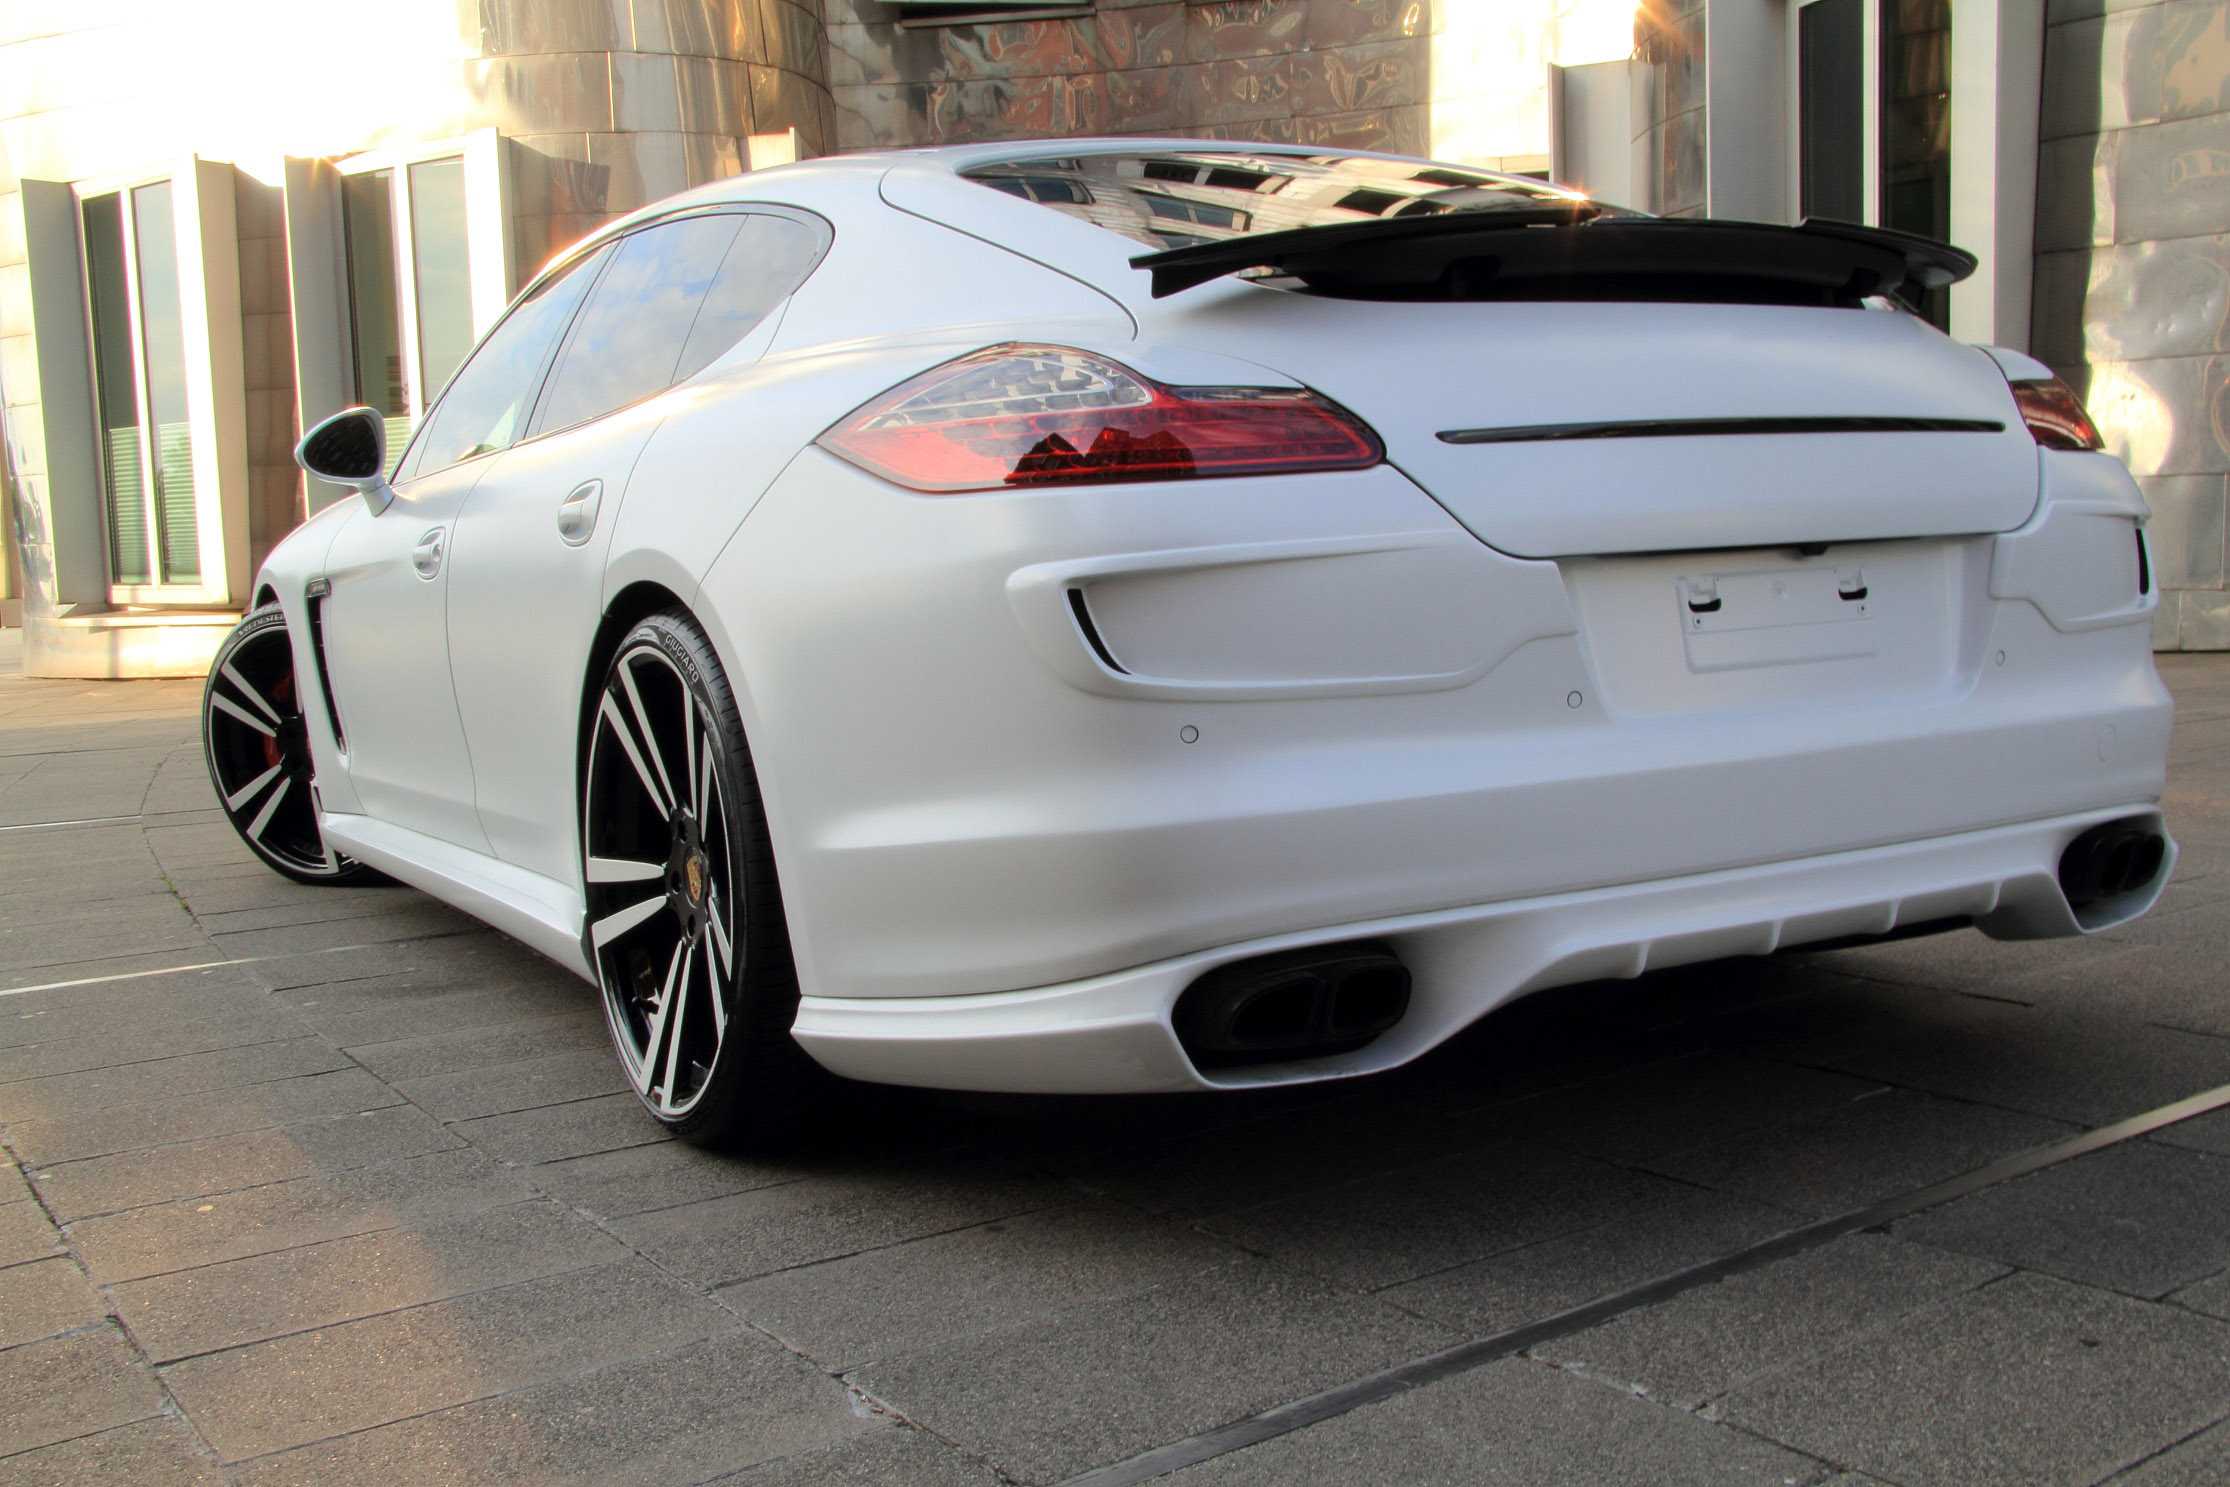 Porsche Panamera Gts White Storm Edition By Anderson Germany